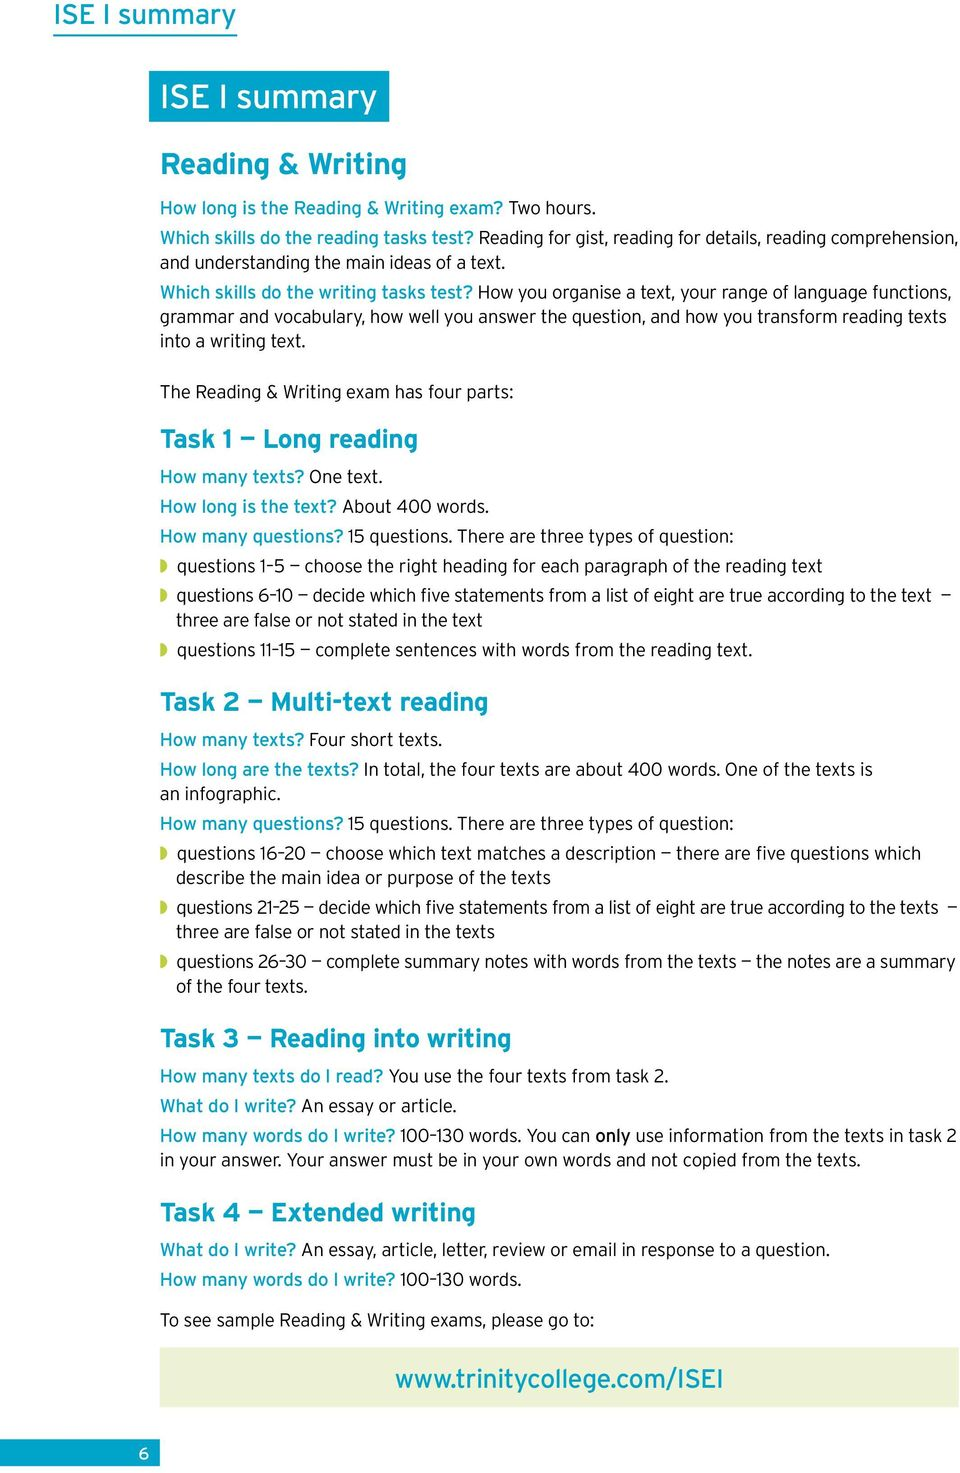 How you organise a text, your range of language functions, grammar and vocabulary, how well you answer the question, and how you transform reading texts into a writing text.